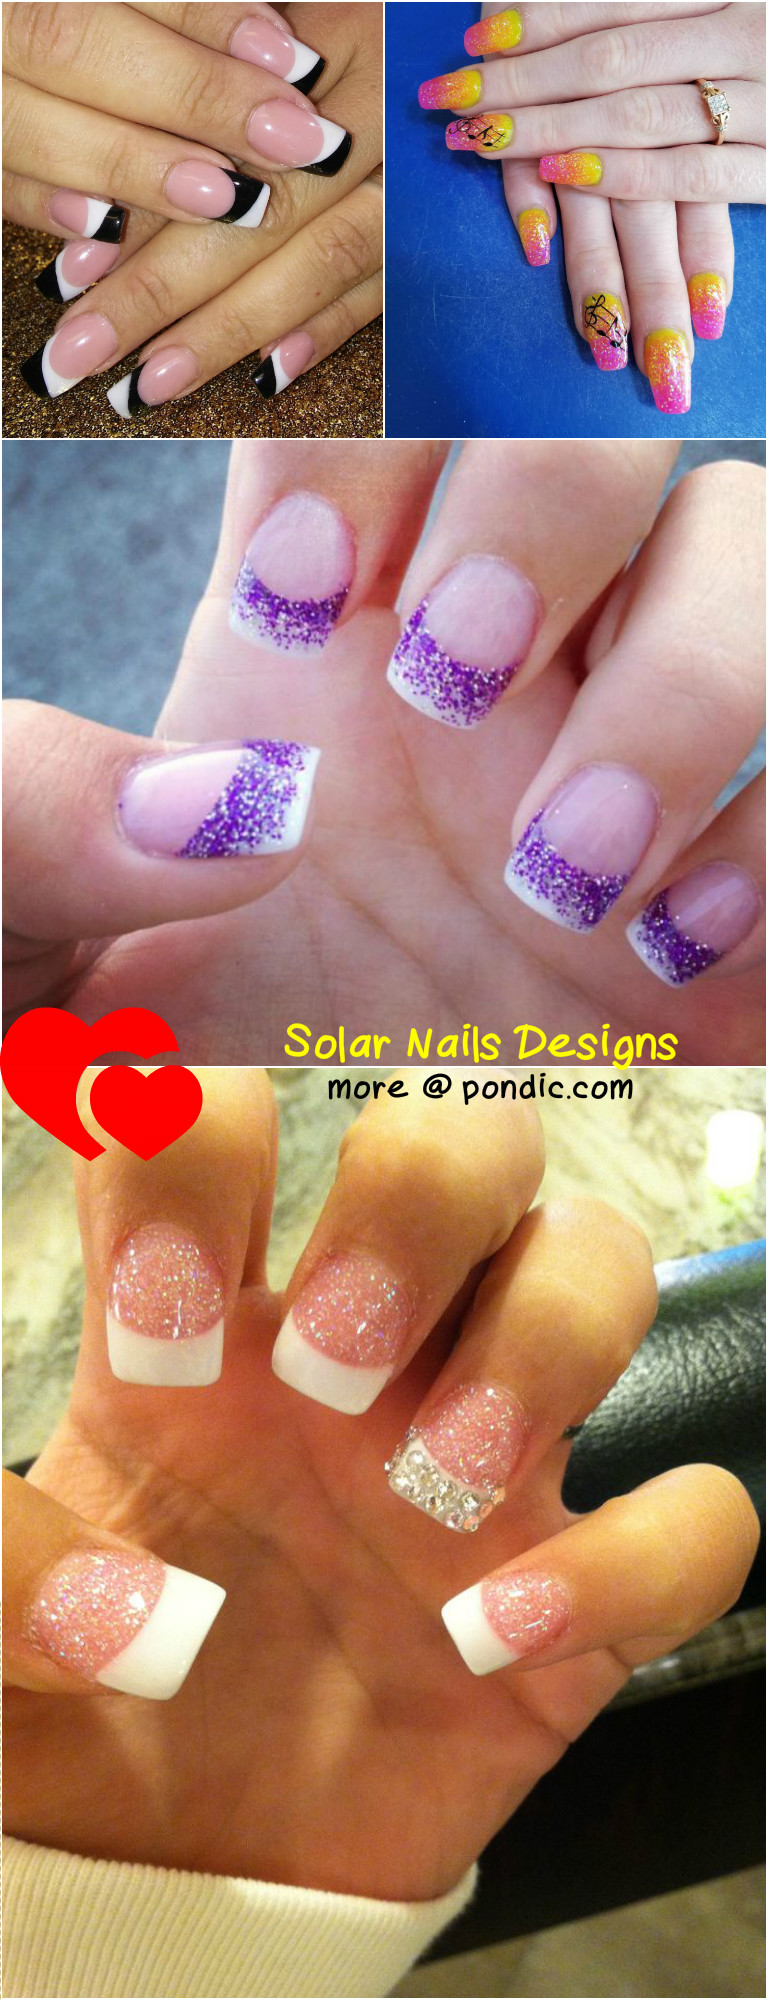 10 ideas and tutorials about solar nails designs pondic how to do solar nails prinsesfo Choice Image